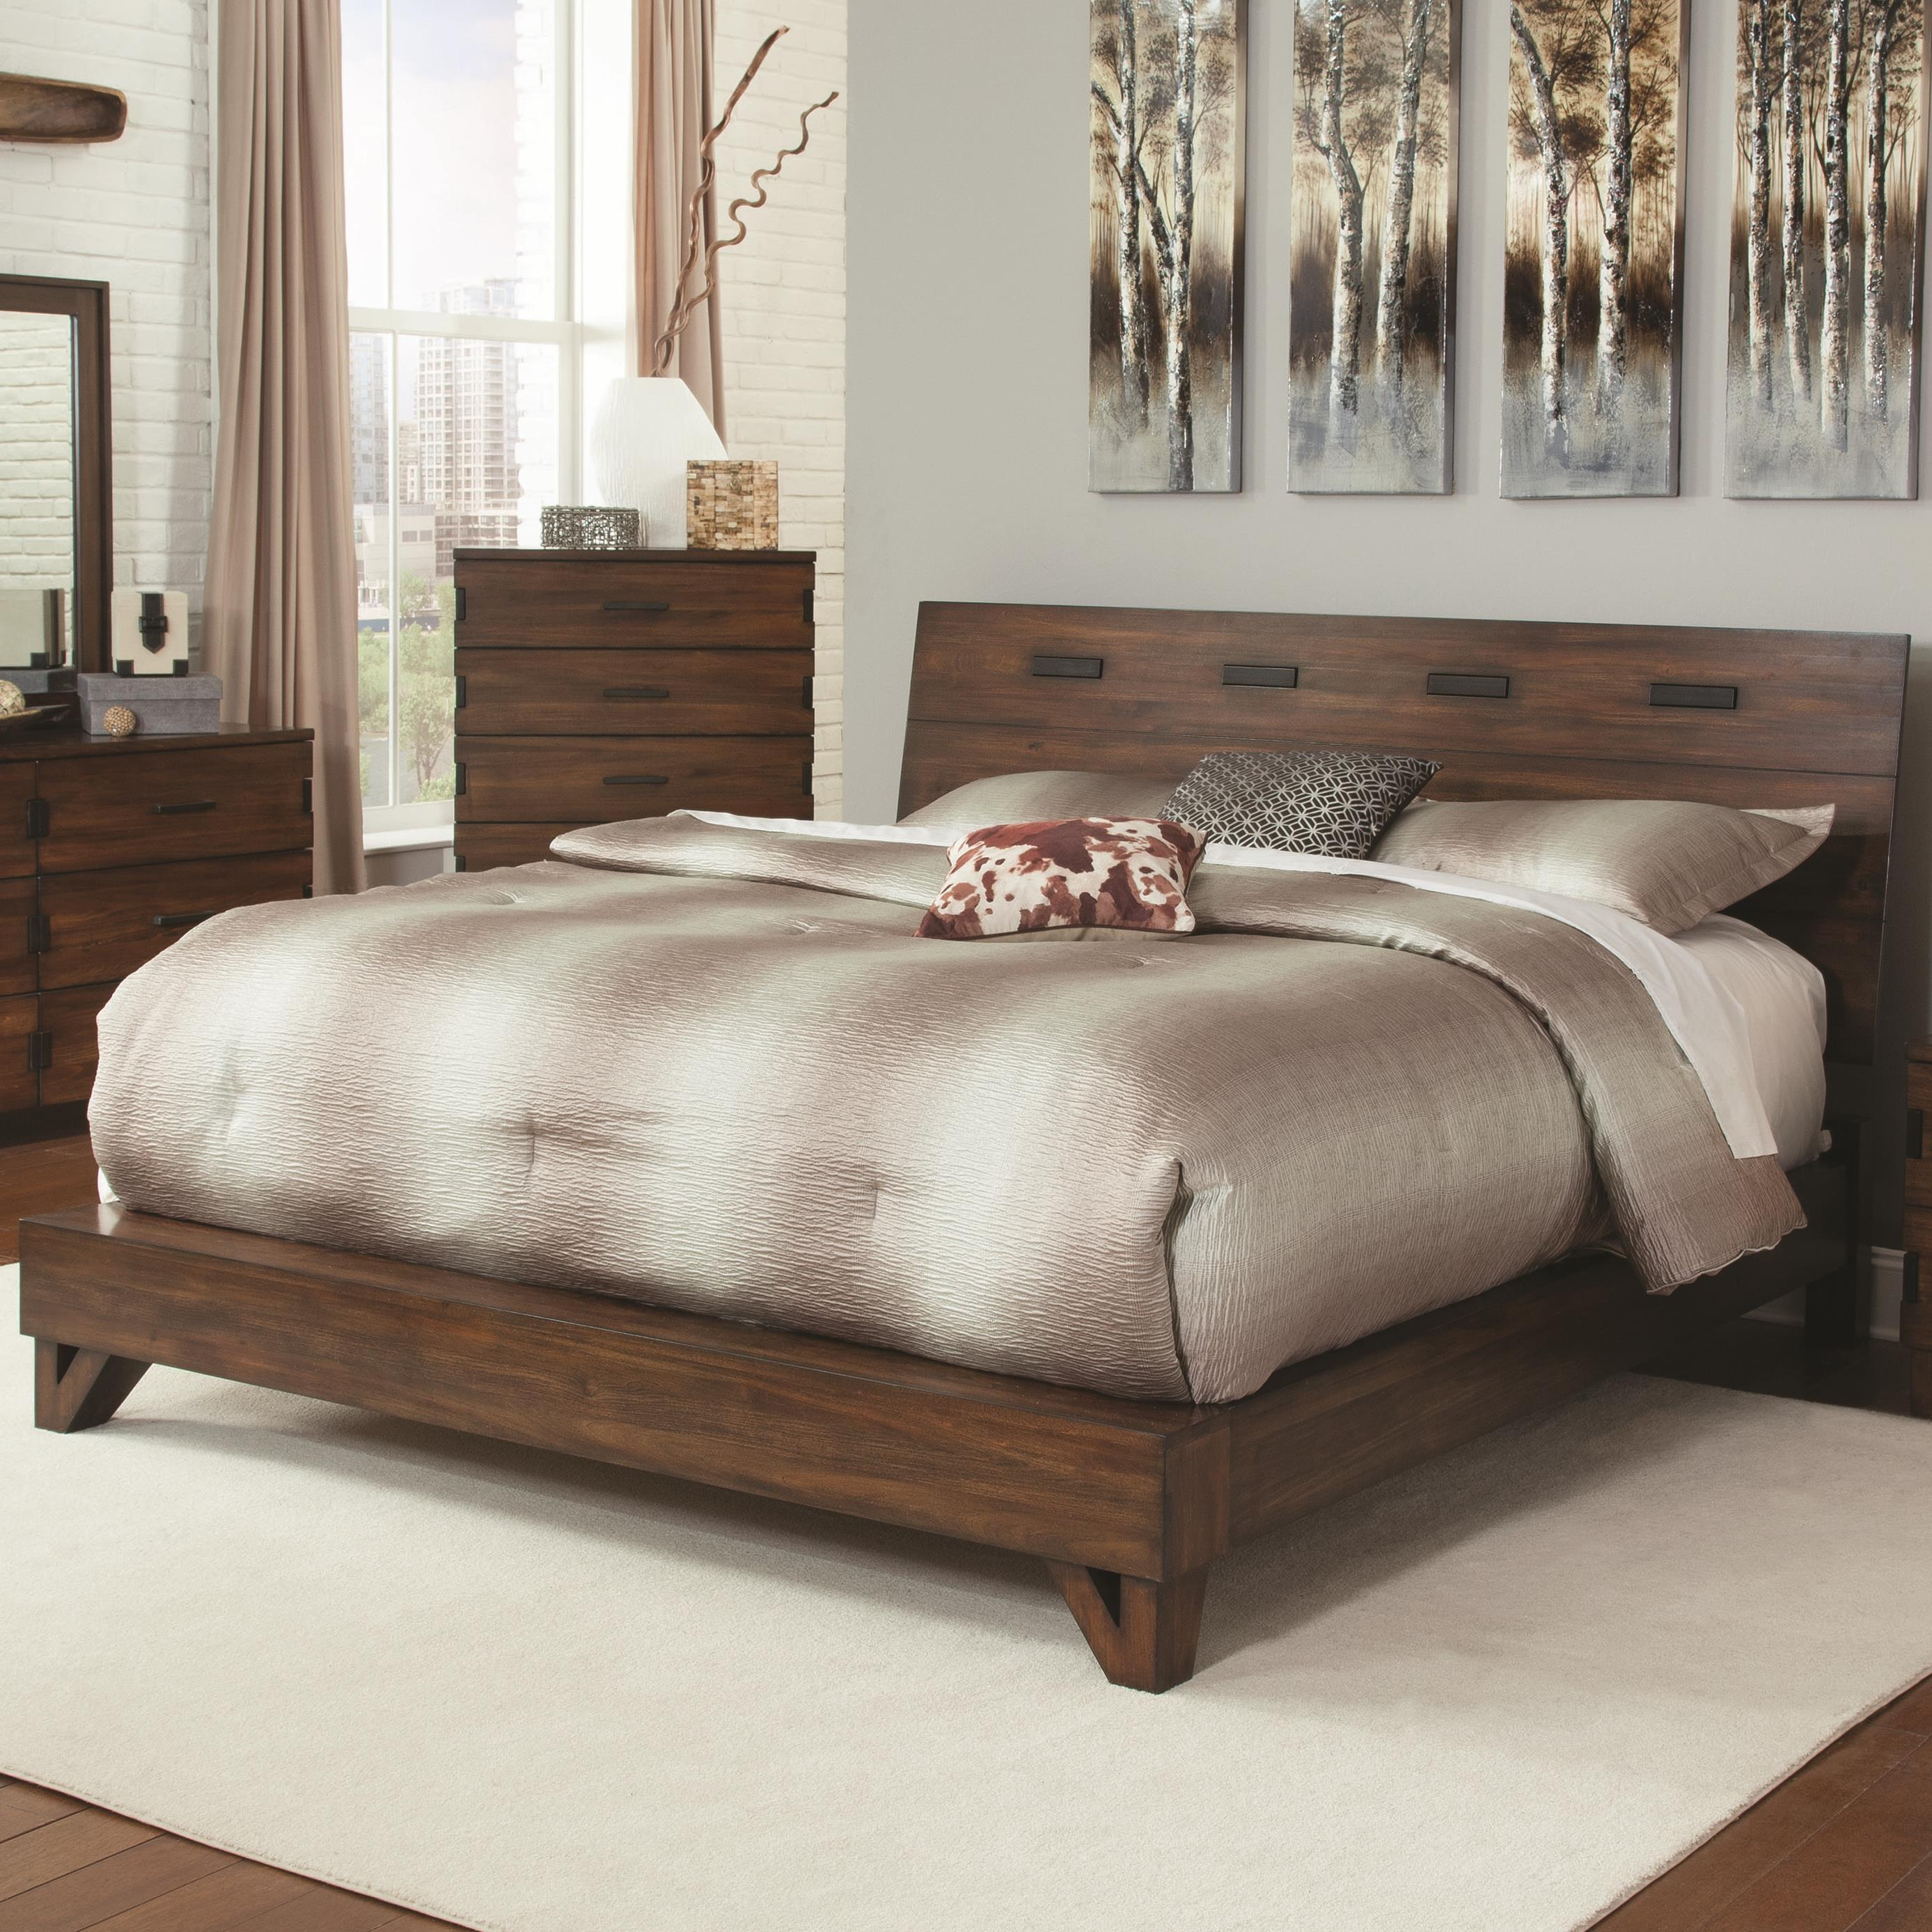 Coaster Yorkshire 204851kw Rustic California King Bed With Contemporary Design Del Sol